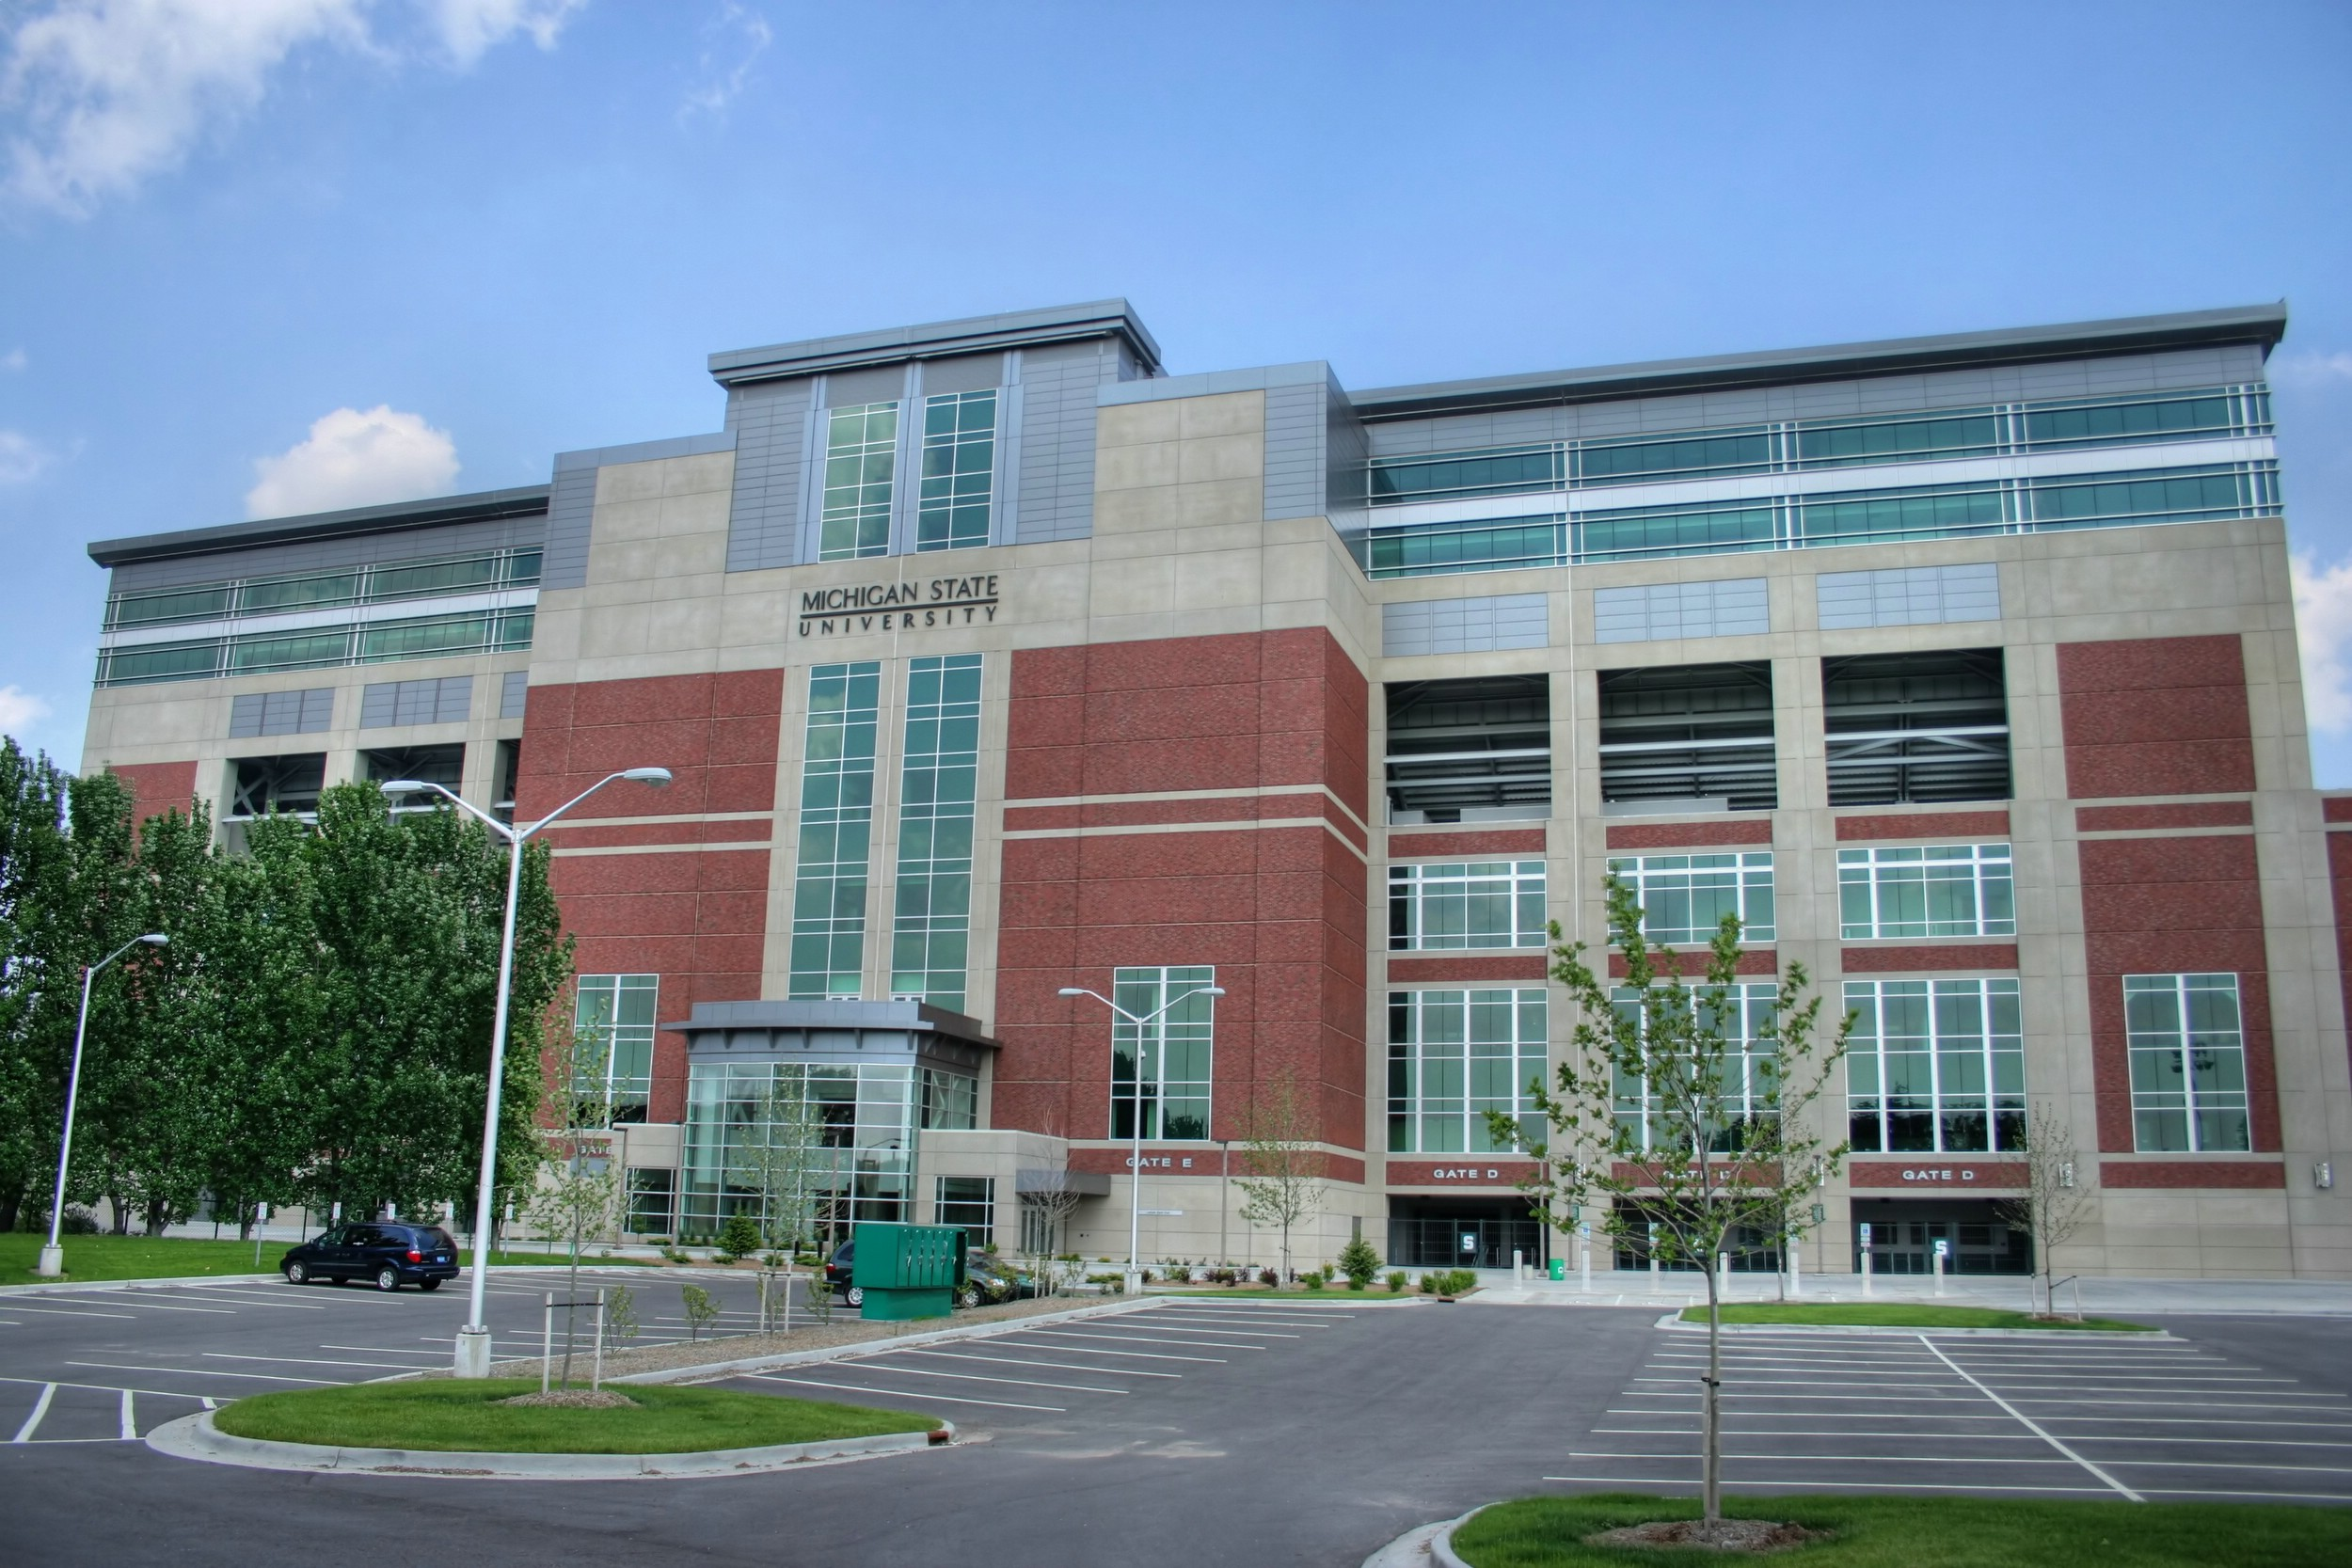 Description msu spartan stadium facade